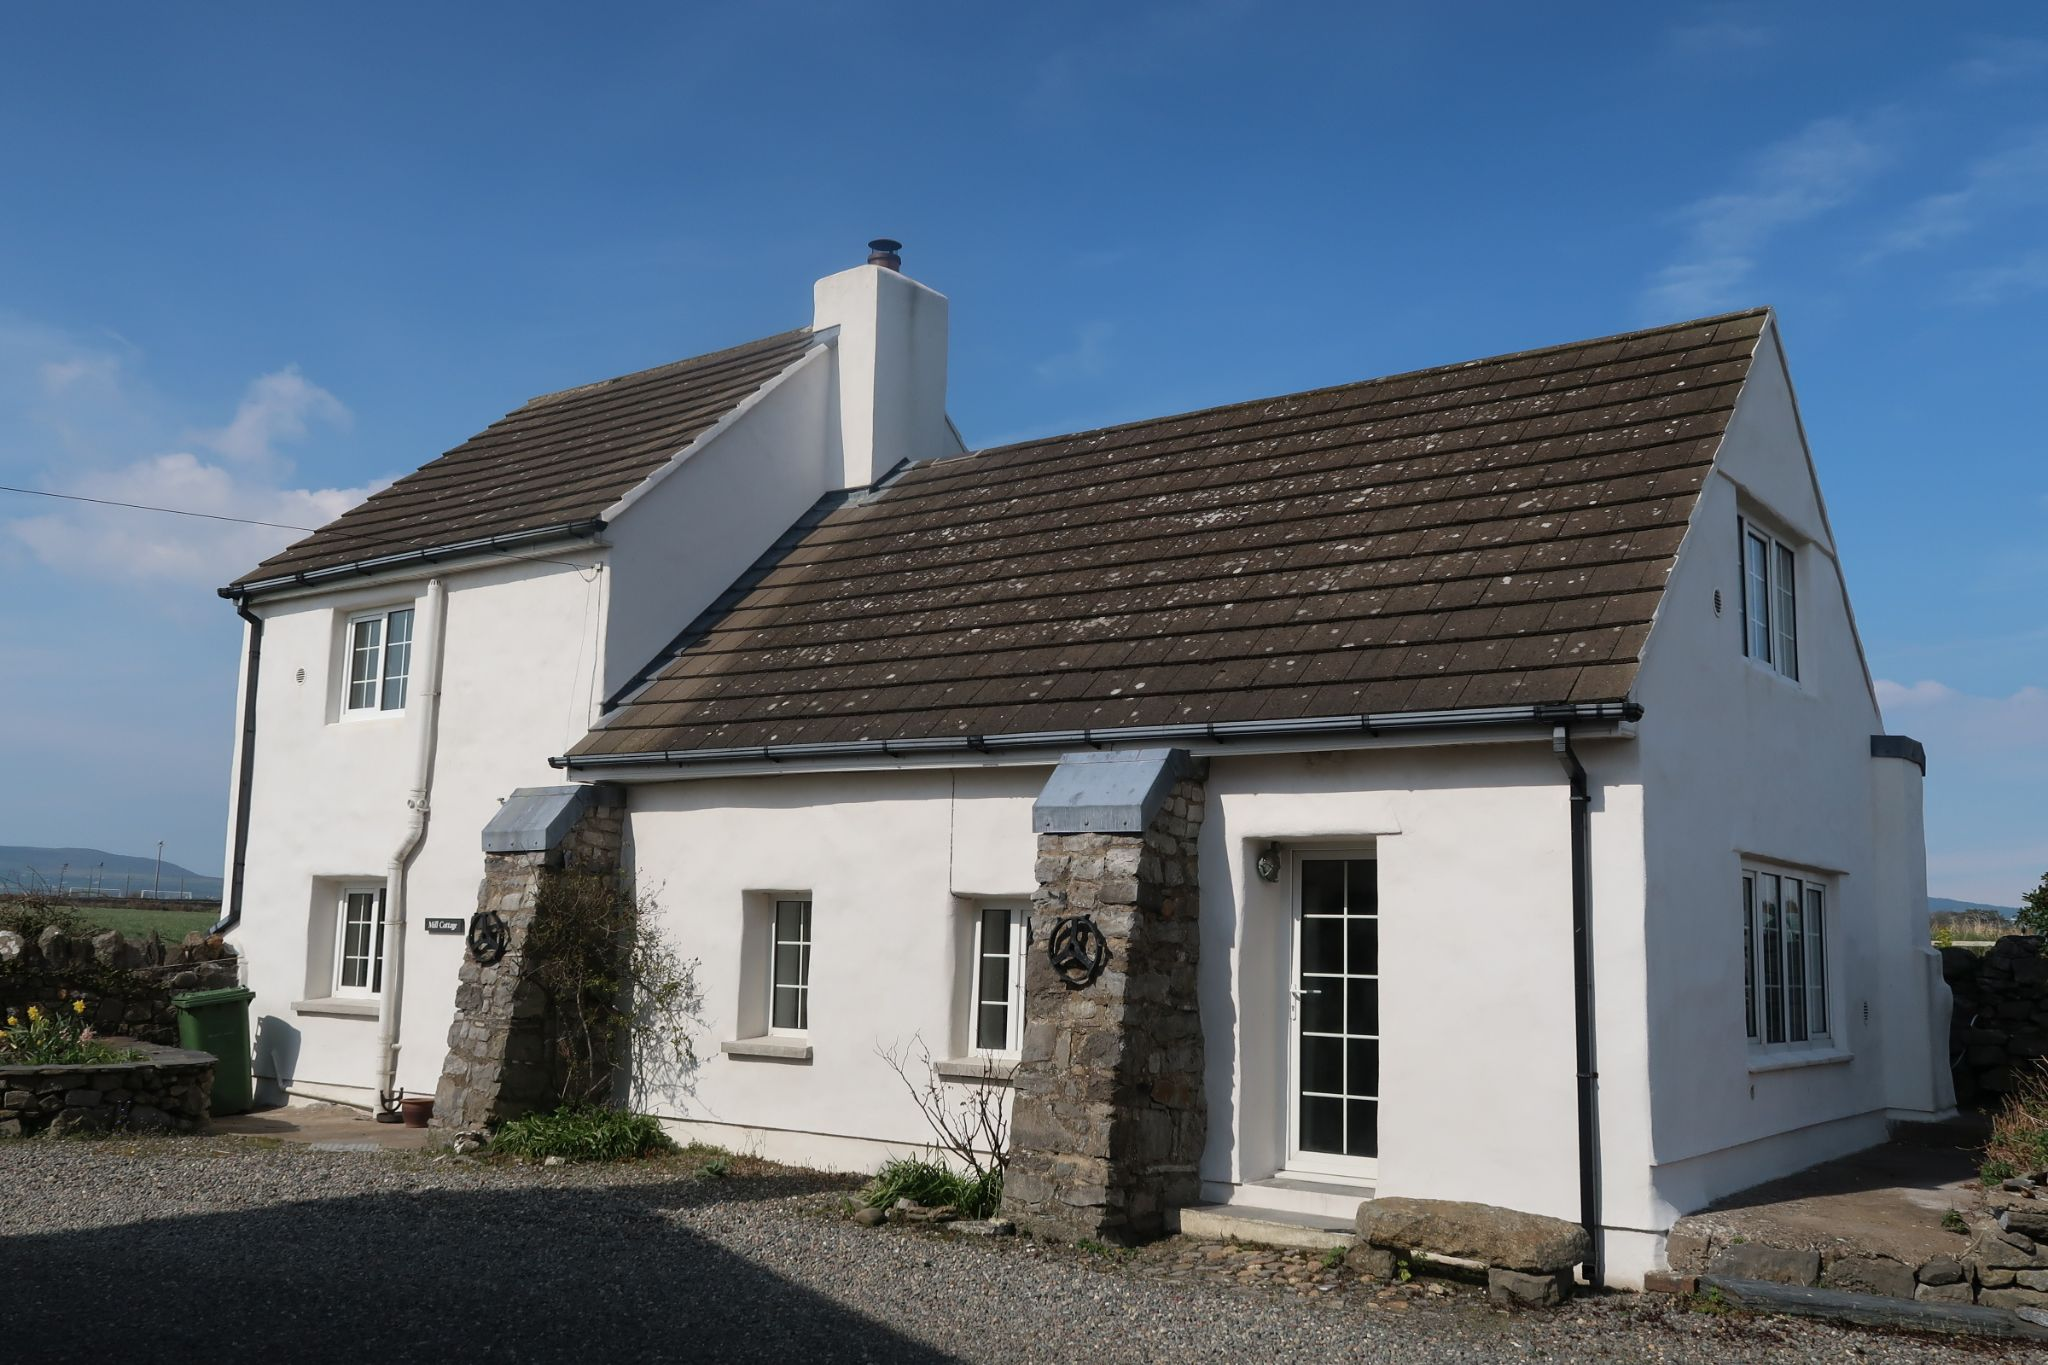 1 bedroom detached house To Let in Castletown - Photograph 4